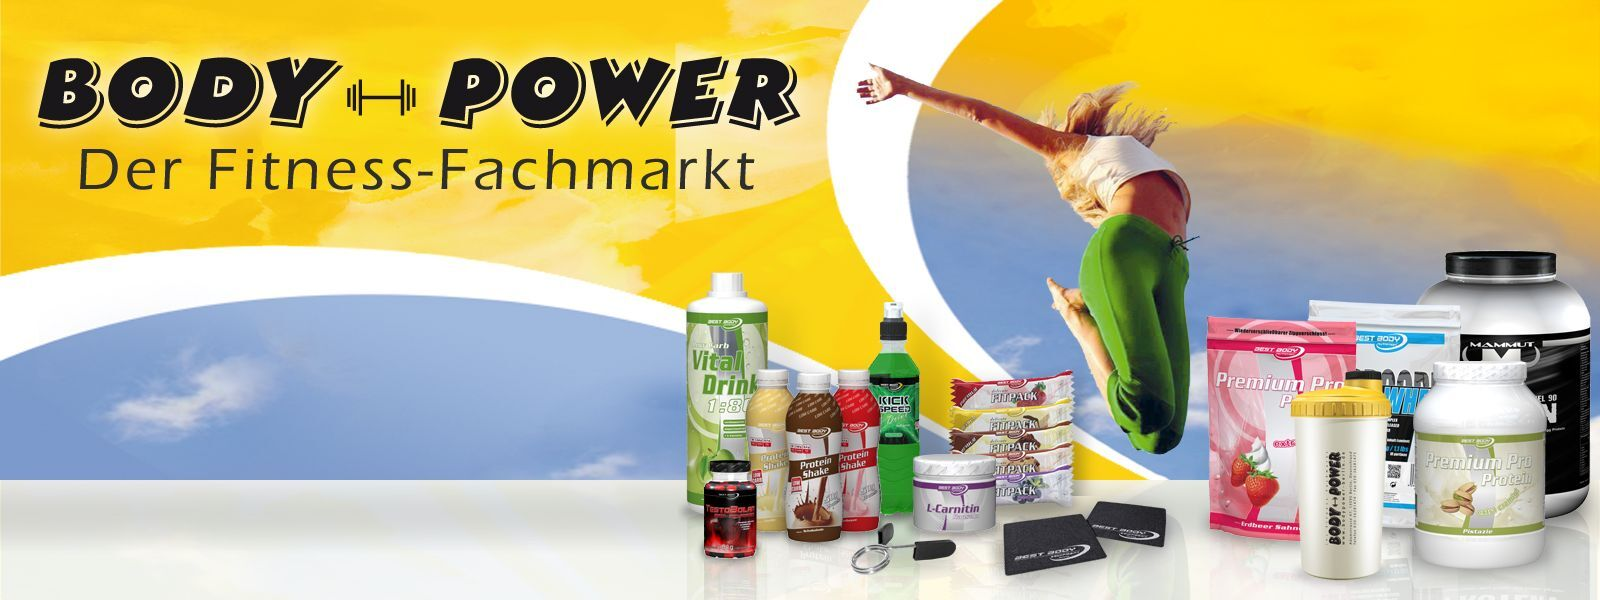 Body Power Der Fitness Fachmarkt